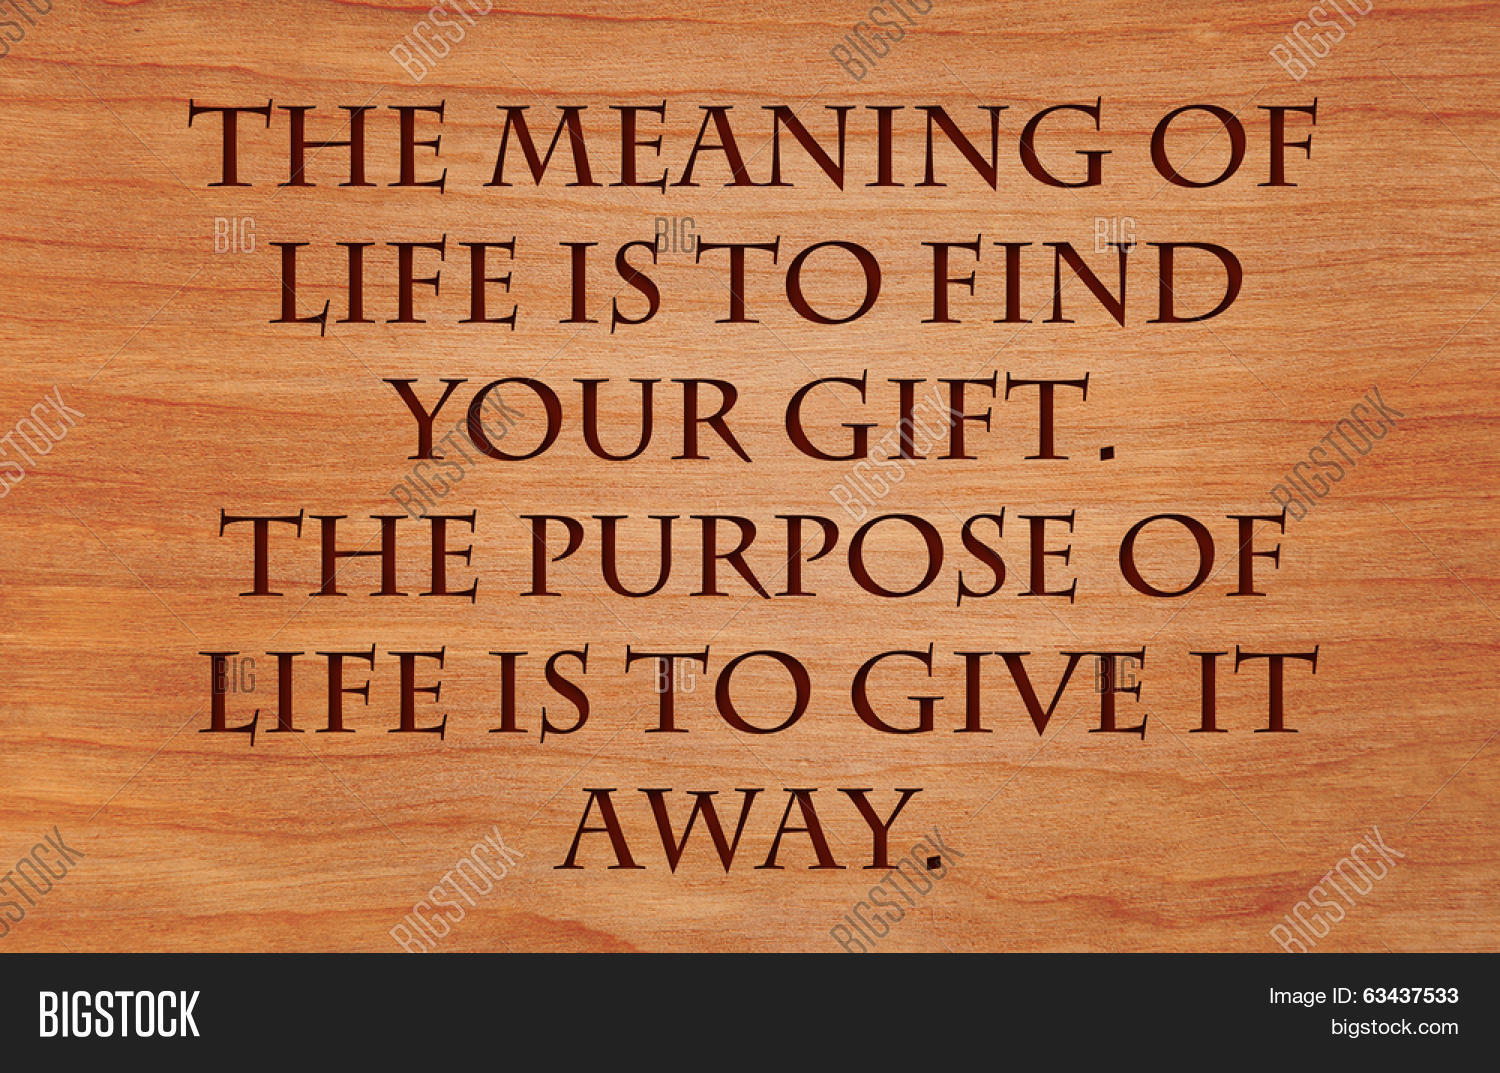 Purpose Of Life Quotes Stunning Meaning Life Find Your Giftimage & Photo  Bigstock